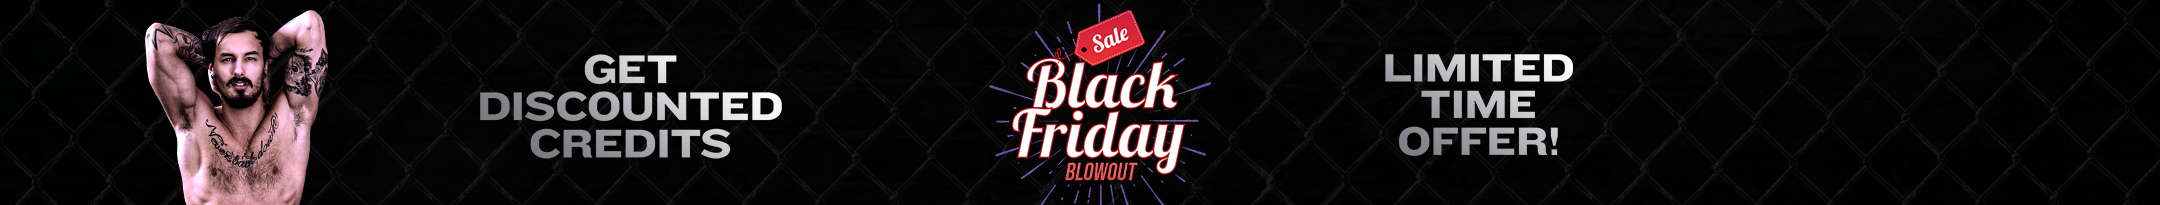 Black Friday Weekend Promo Contest Day 2 Promo